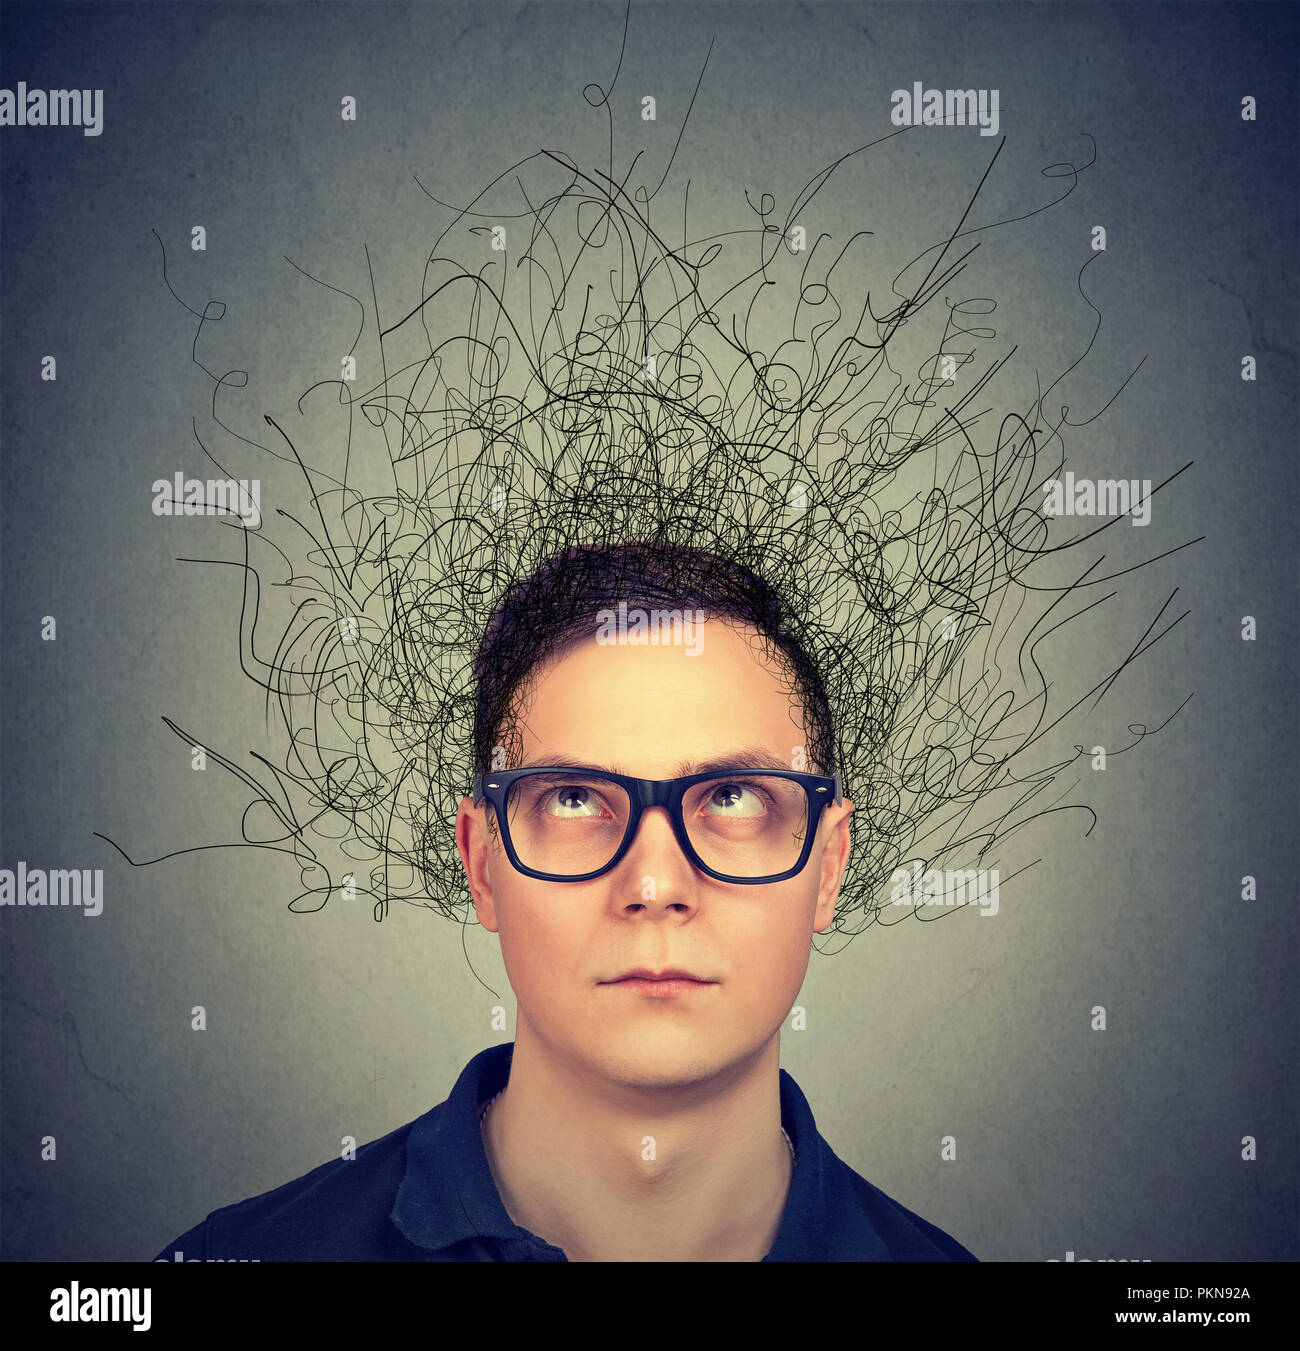 Young man in eyeglasses with thoughts in anxiety and chaos looking up on gray background - Stock Image